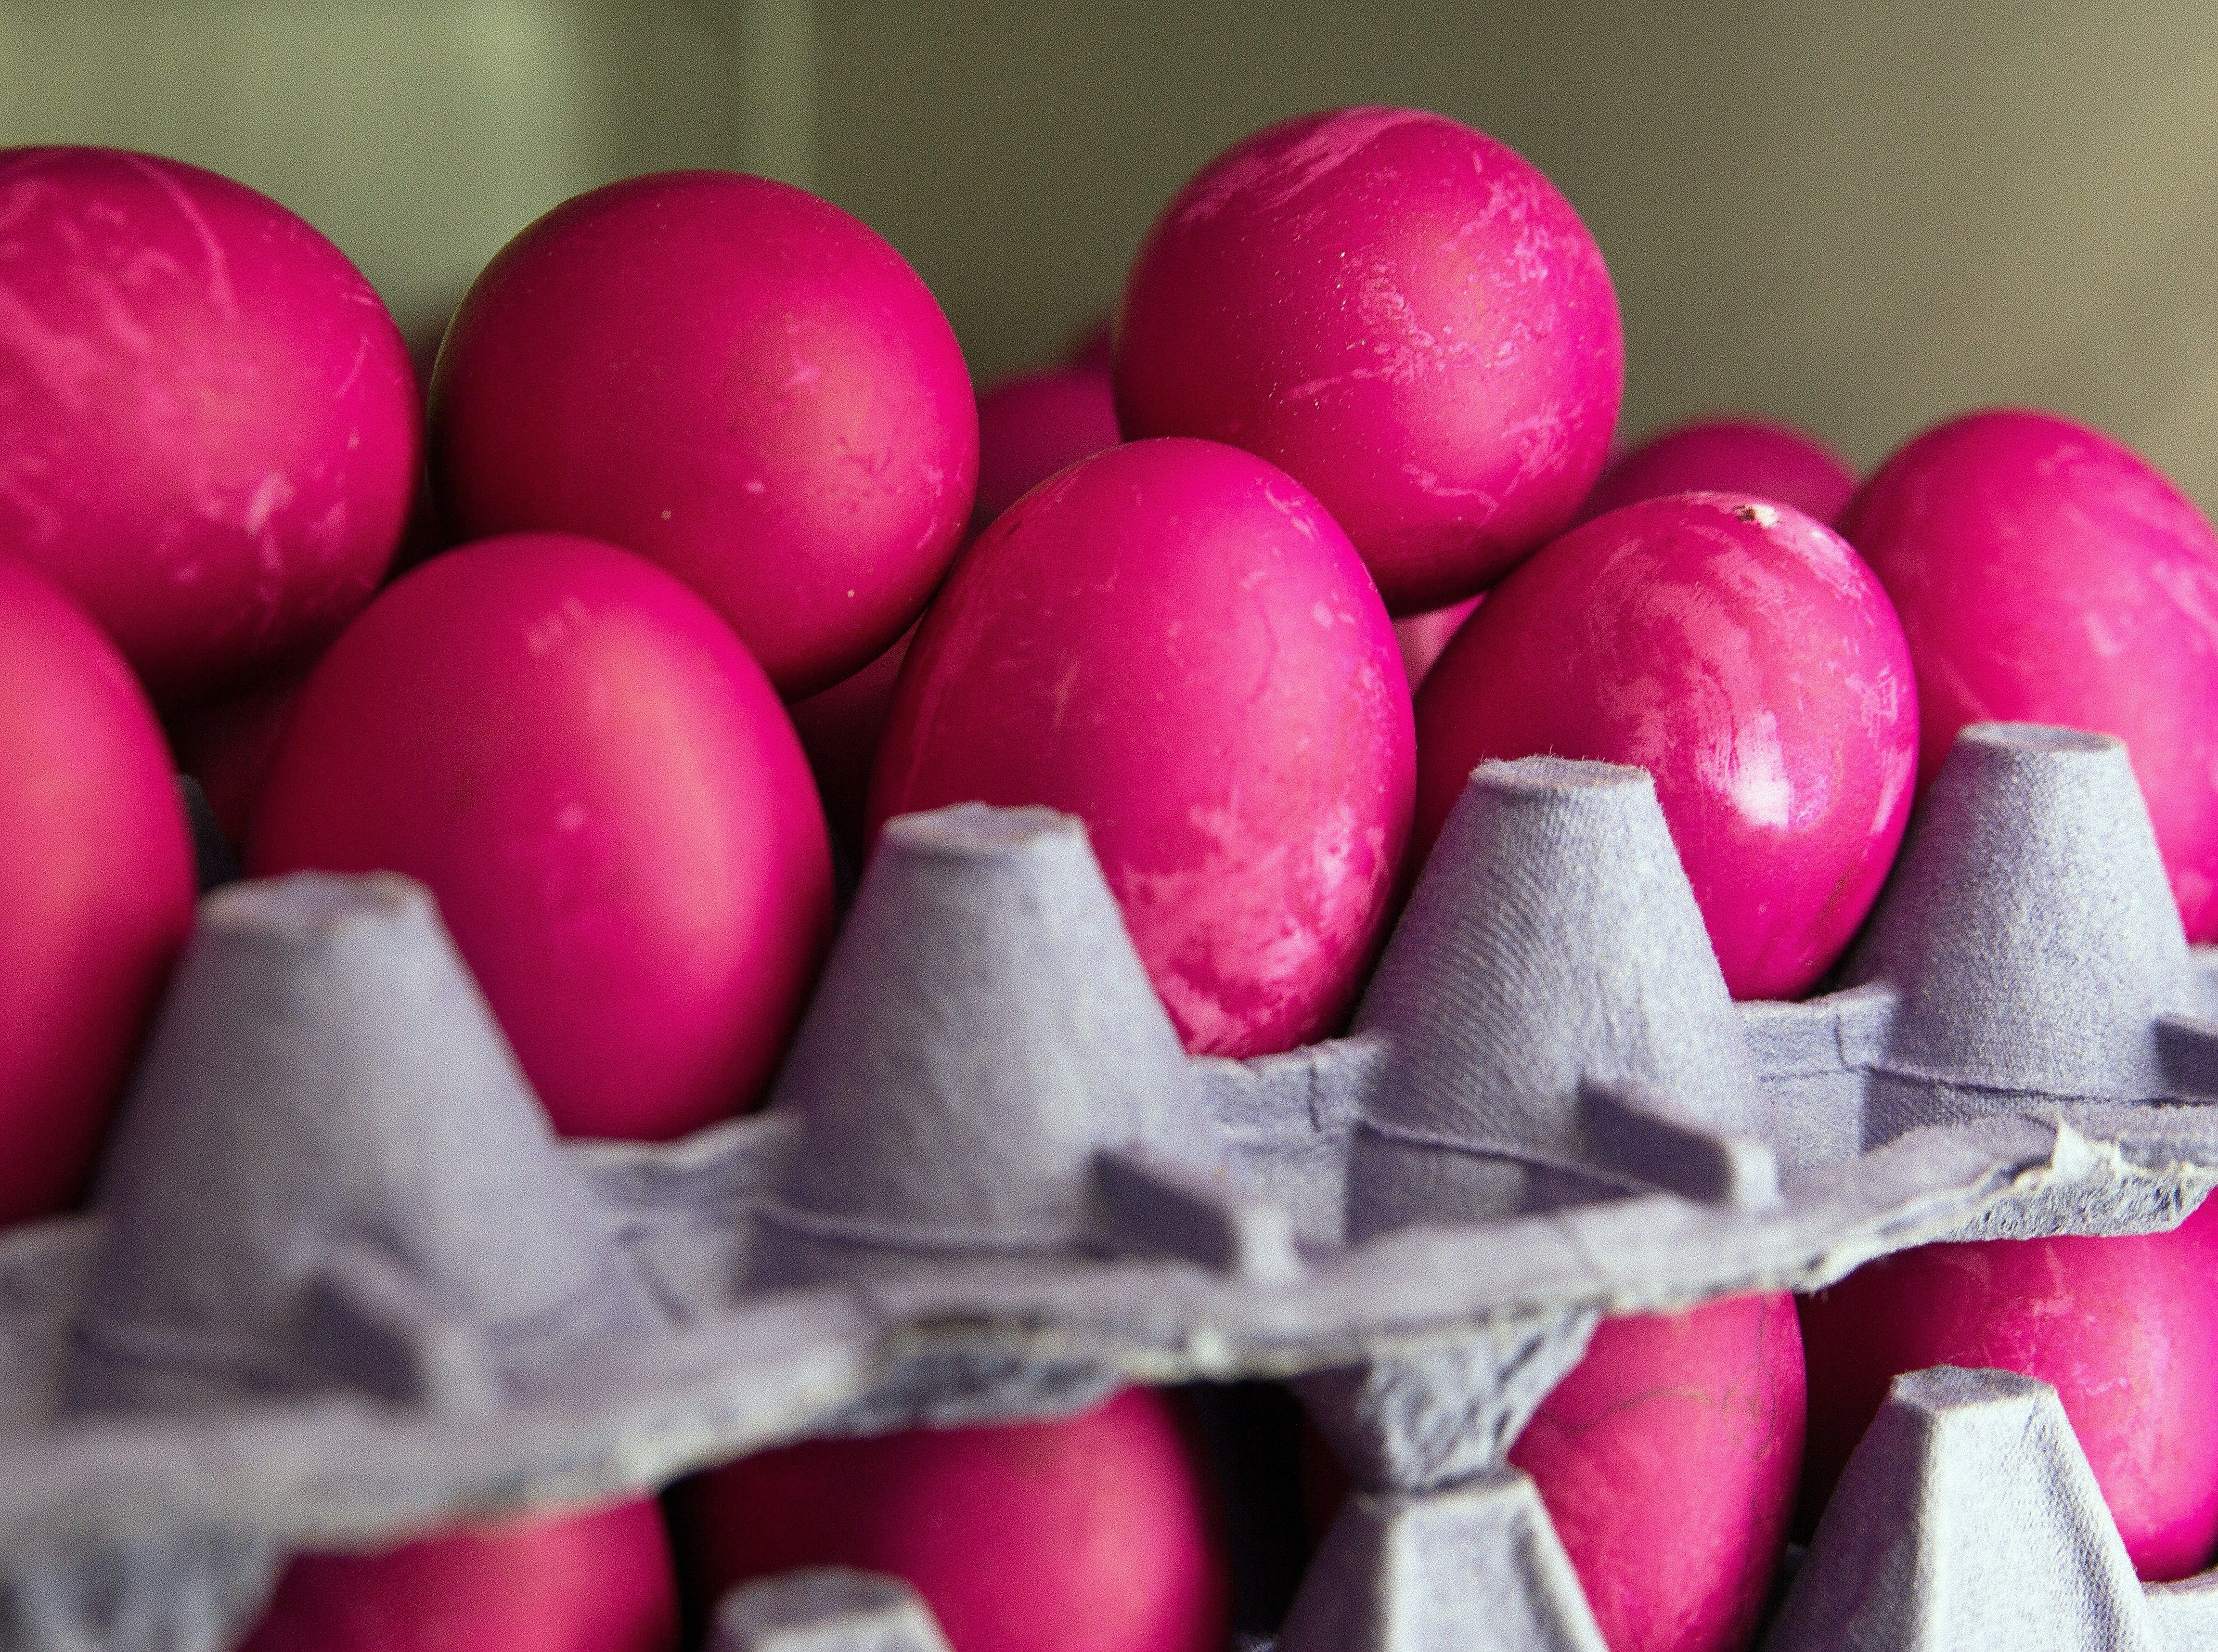 A stack of Easter eggs that have been dyed pink.